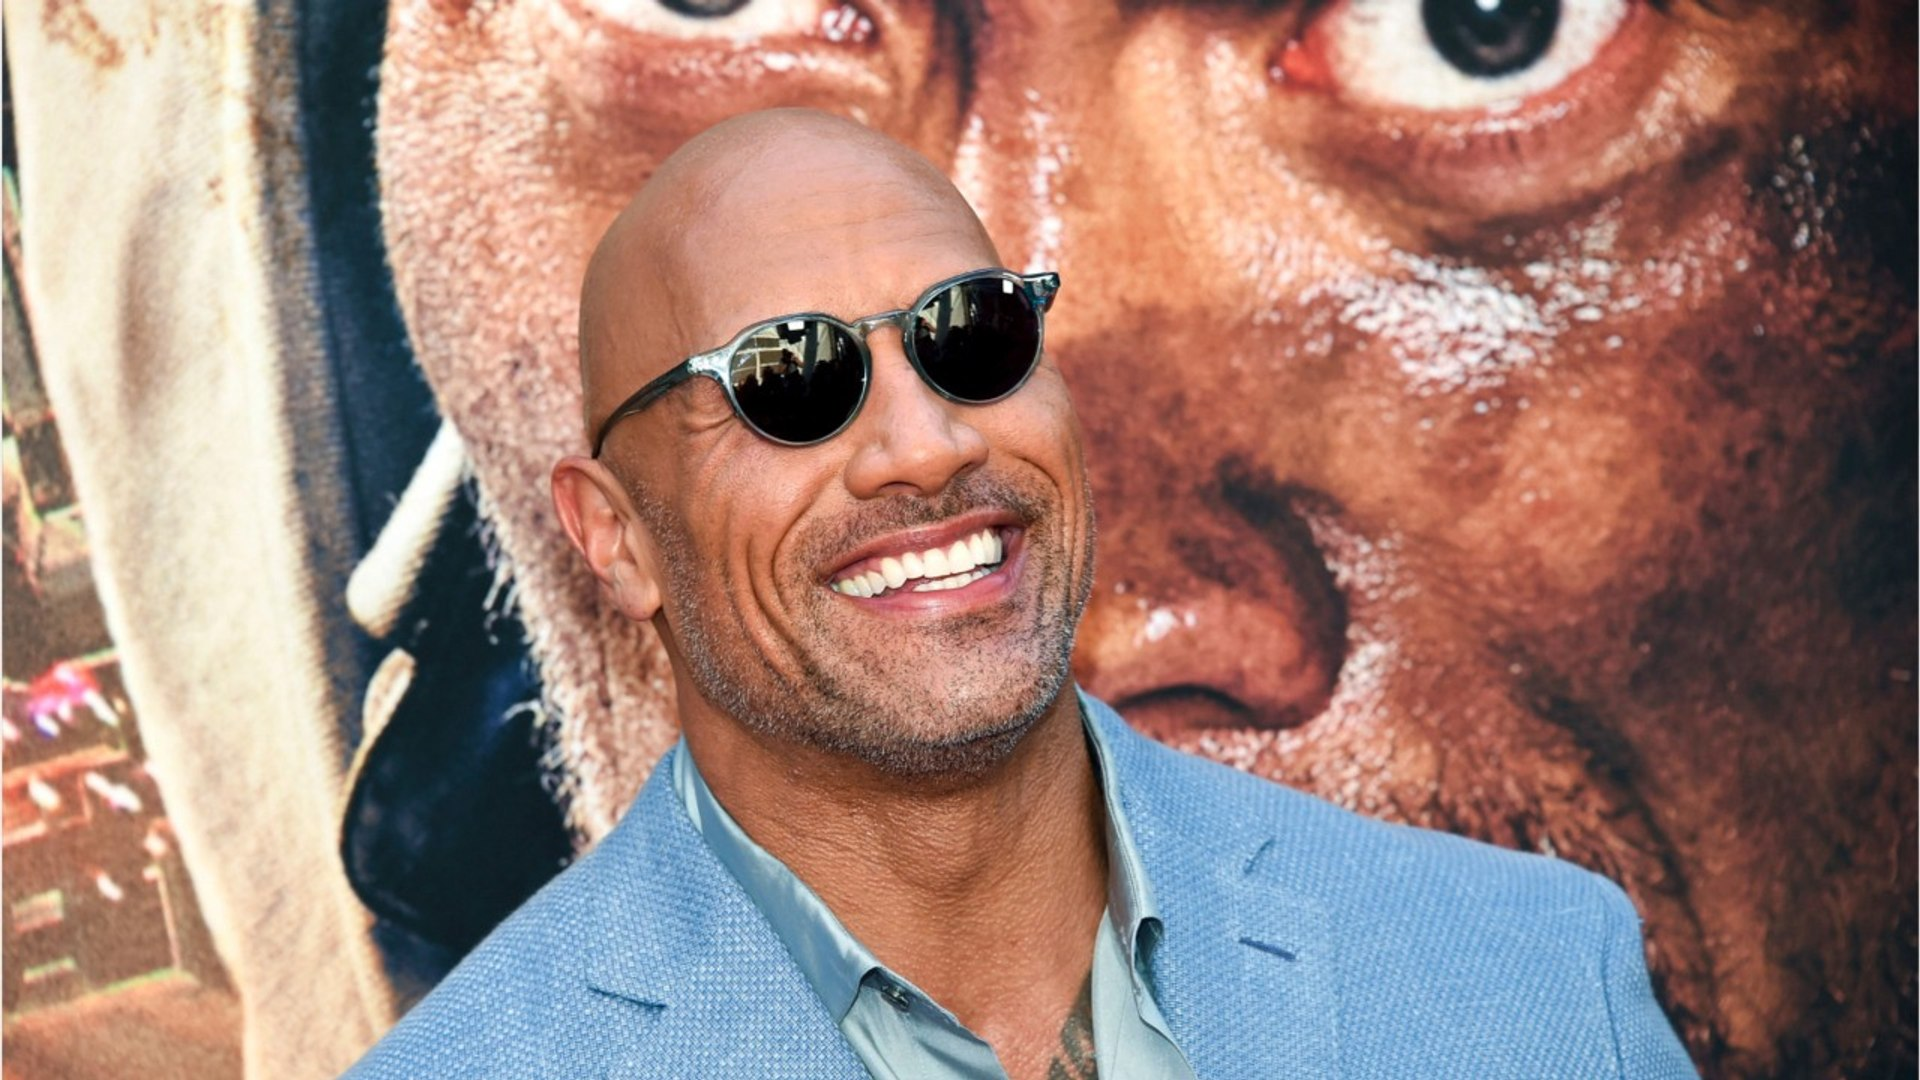 The Rock May Team With Jason Momoa For Future Fast And Furious Film